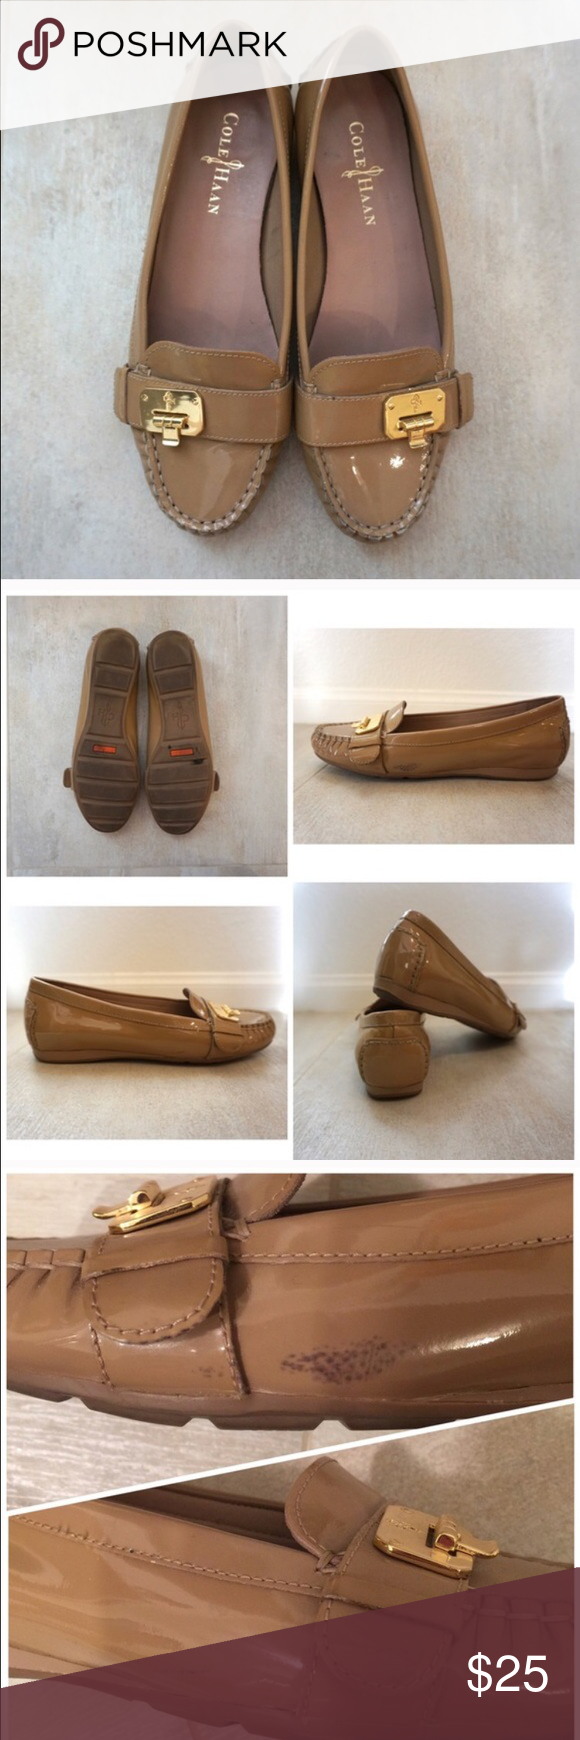 💕FLASH SALE💕Cole Haan loafers Reposh: condition shown in pictures. Great shoe and comfortable just not the greatest for wide feet. Cole Haan Shoes Flats & Loafers